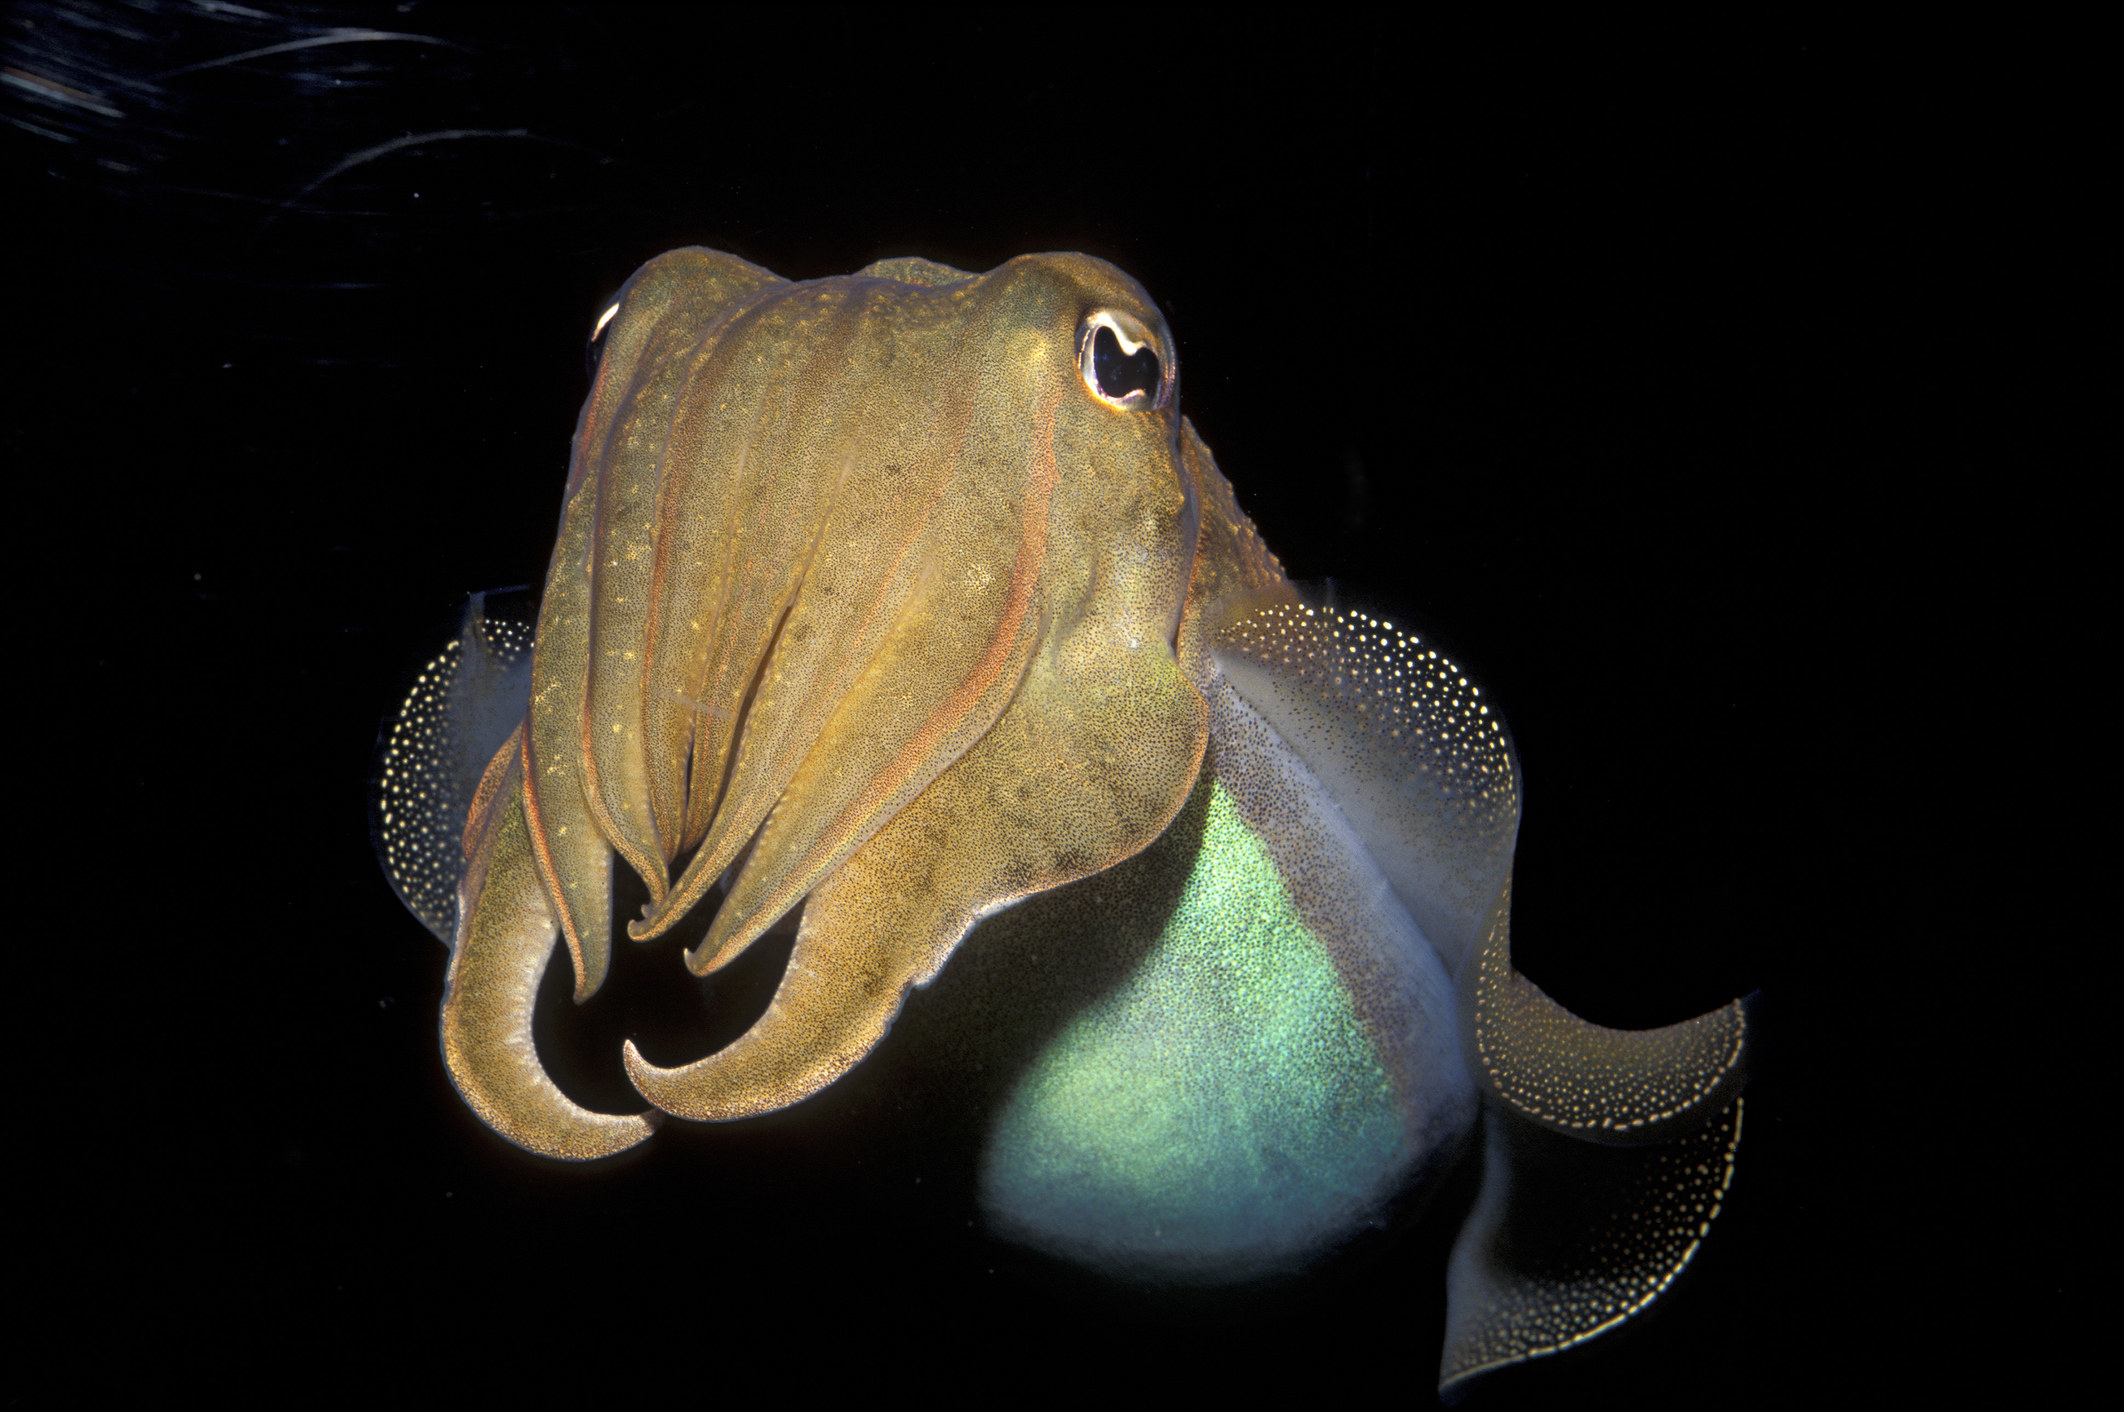 An octopus looking fish droopy eyes and fins that look like a beard